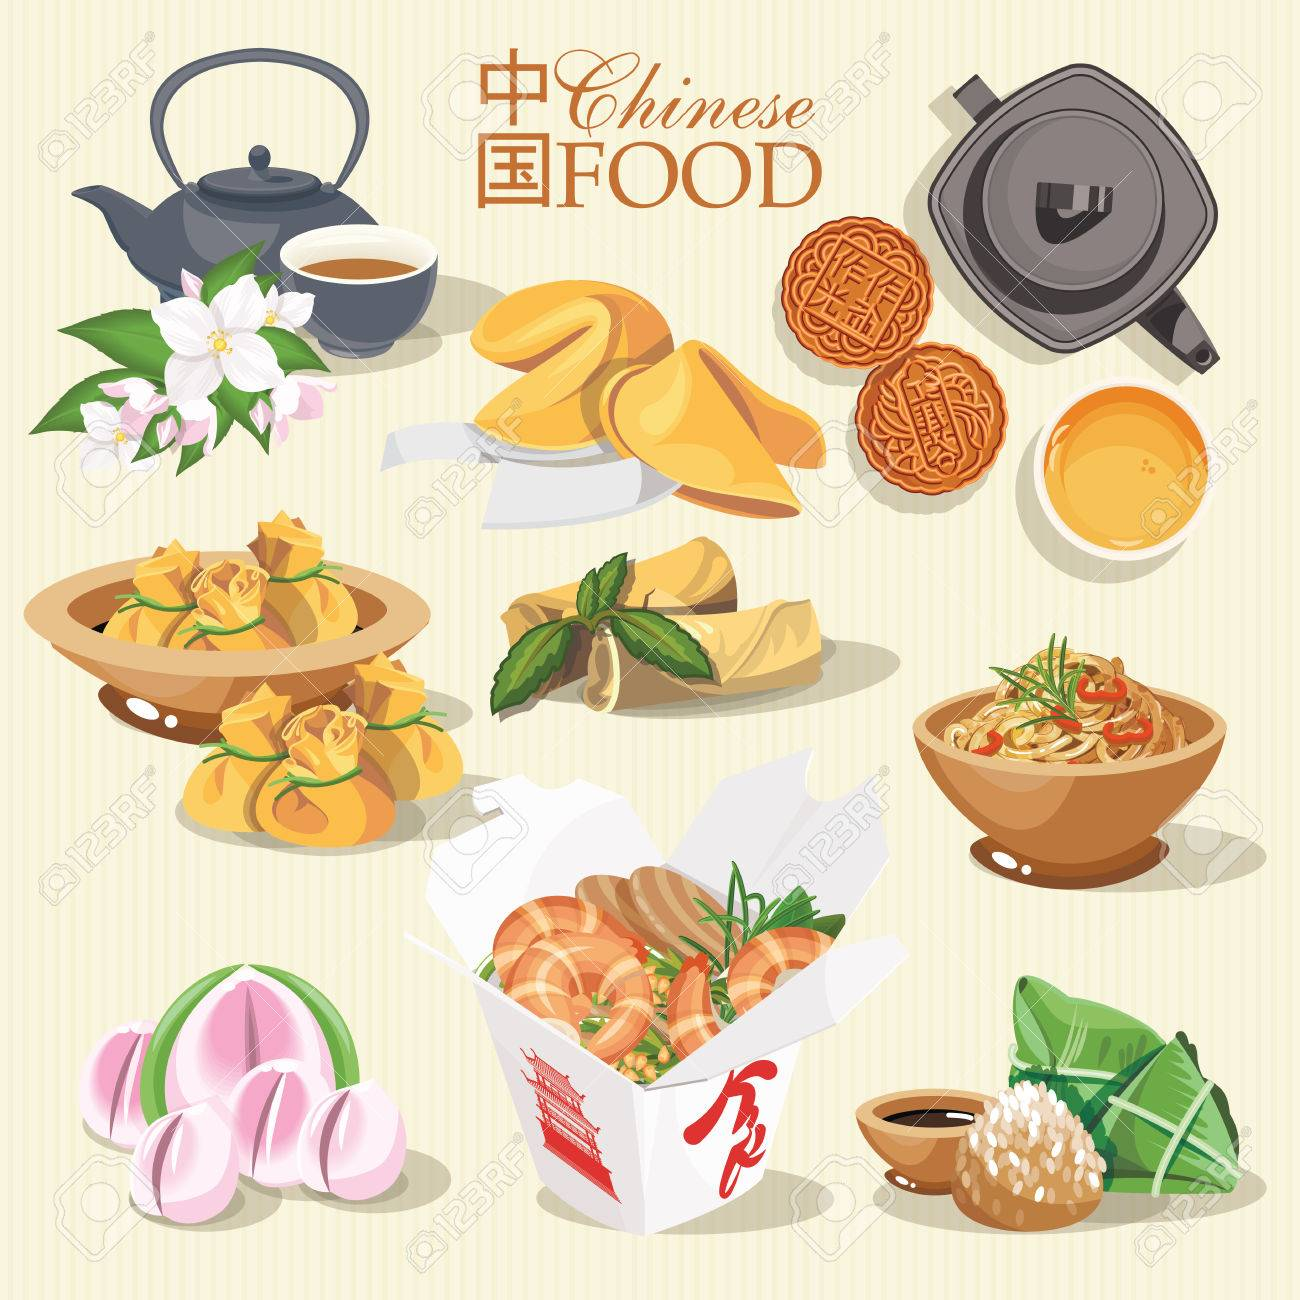 Vector Set With Chinese Food Chinese Street Restaurant Or Homemade Royalty Free Cliparts Vectors And Stock Illustration Image 61589030